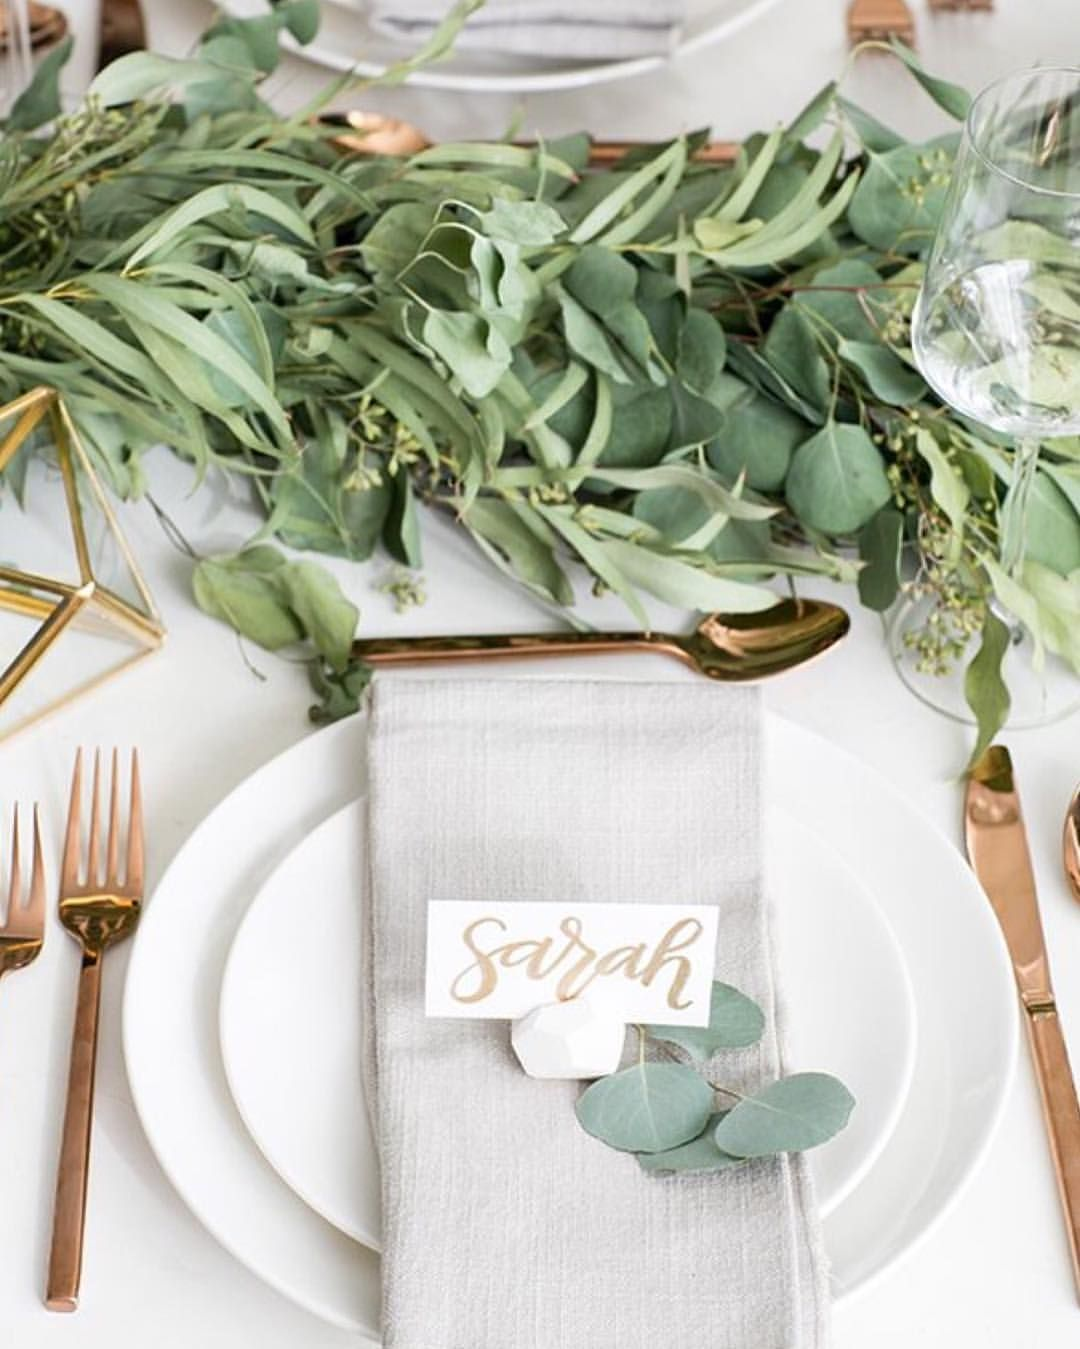 Rom rosemaryentwined place cards to rustic birdcages mixed in with